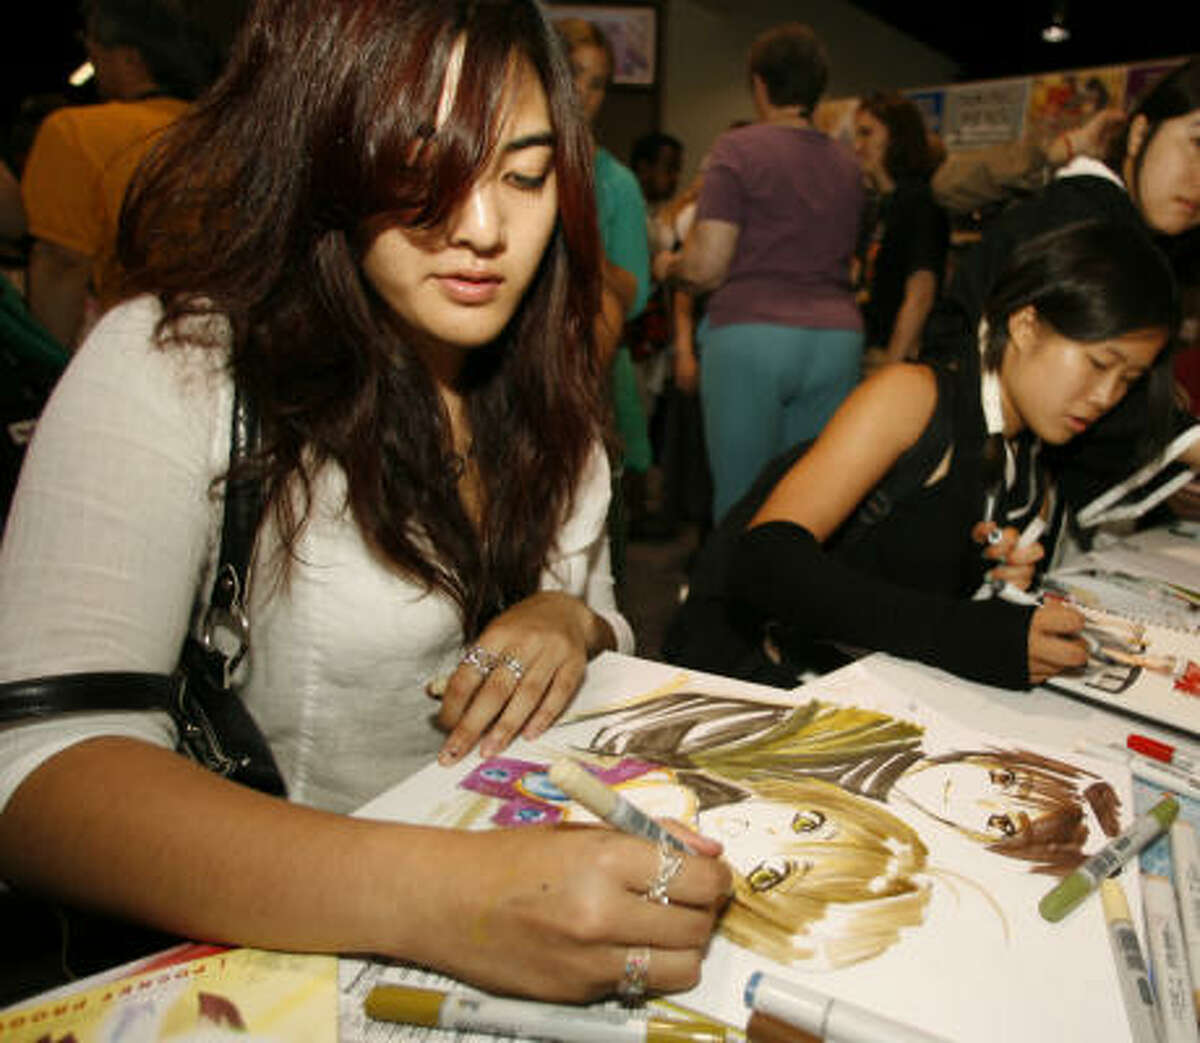 Christine Vu sits at a booth that sells manga markers and skillfully sketches a lean-lined portrait at the Anime Expo Monday, July 3, 2006, in Anaheim, Calif. Japanese anime and manga - animation and comics - are drawing a lot of attention in the United States. And, more than ever before, not just from its traditional male audience. (AP Photo/Damian Dovarganes)